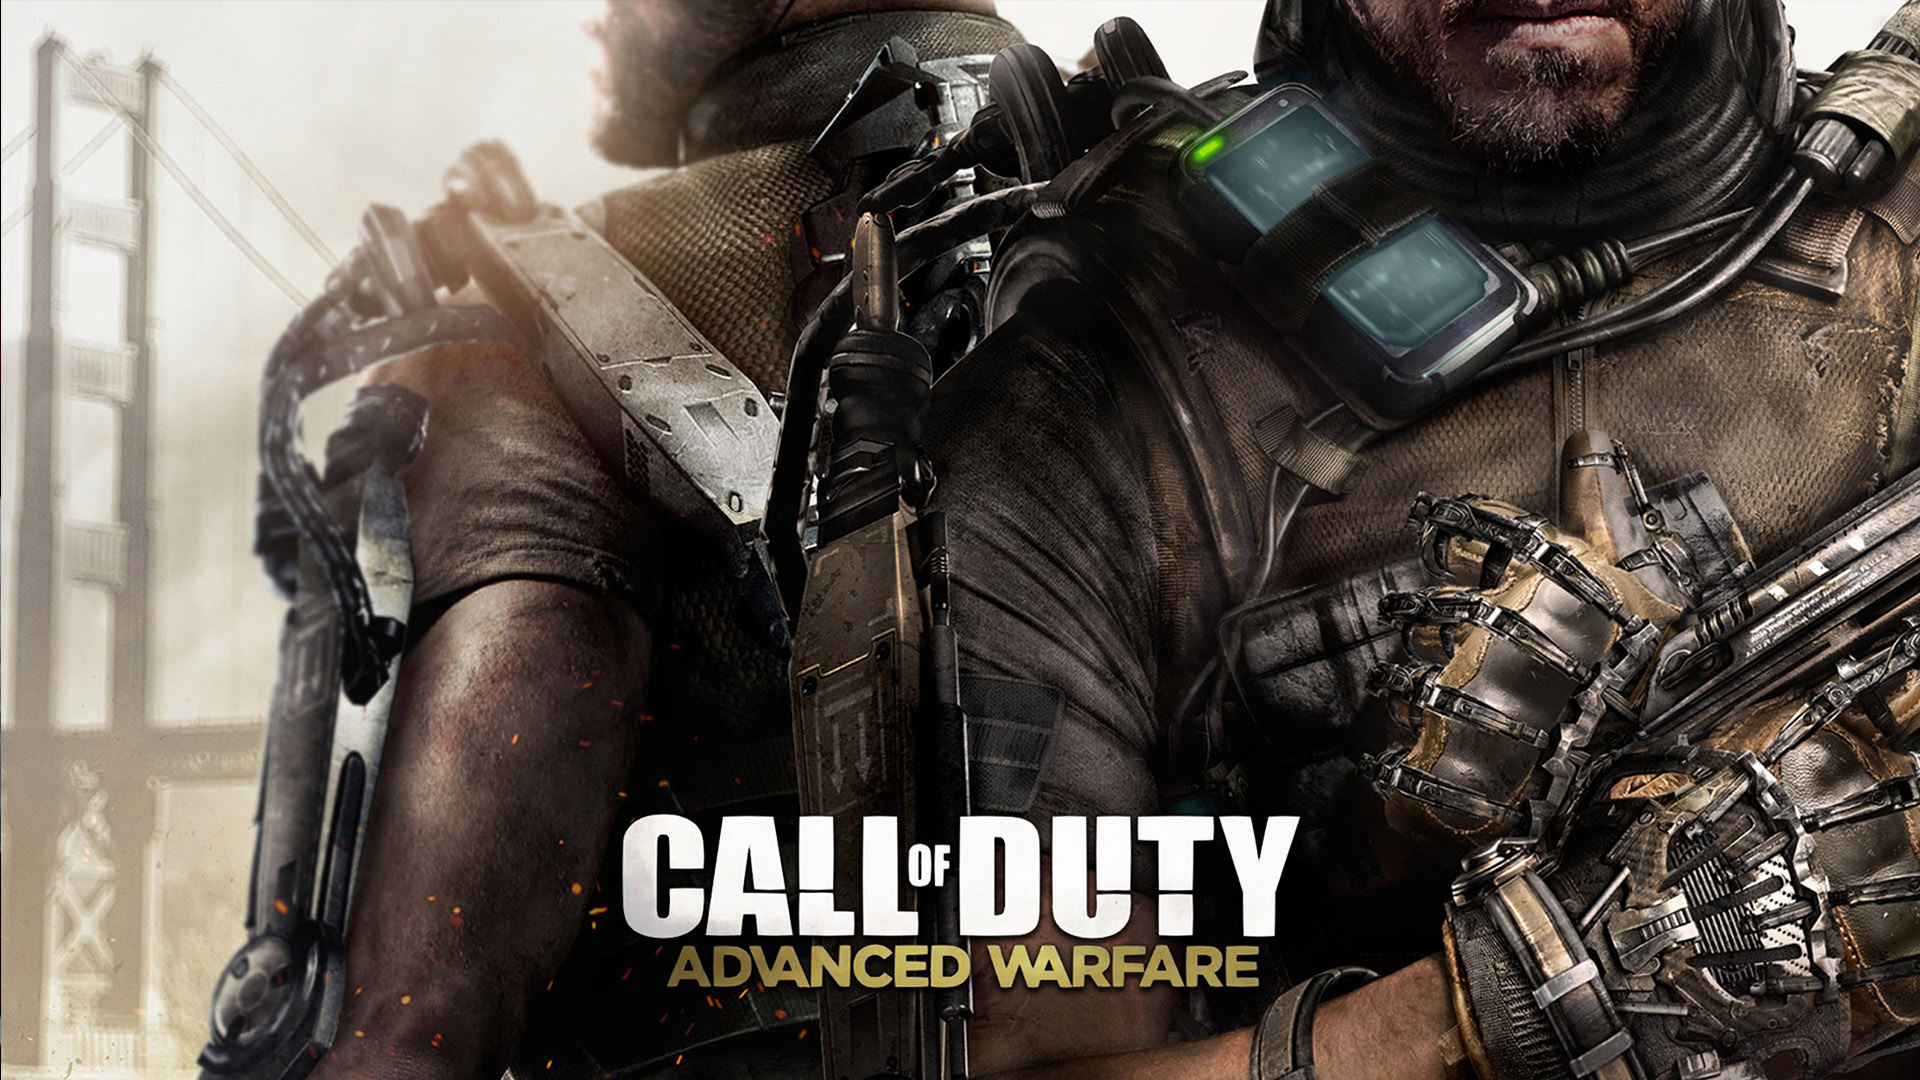 Call Of Duty Advanced Warfare Full HD Wallpaper And Background